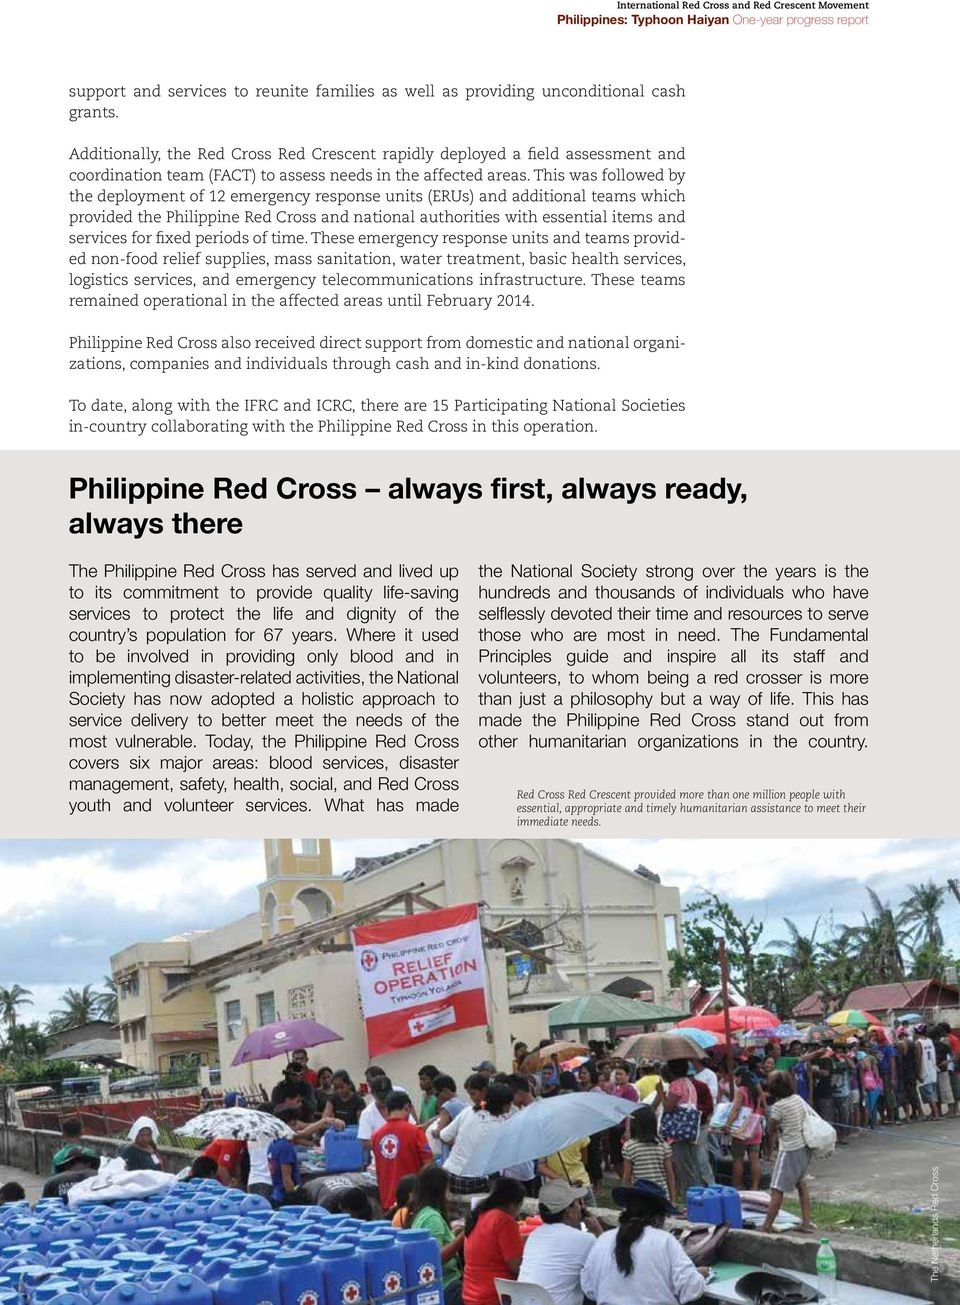 This was followed by the deployment of 12 emergency response units (ERUs) and additional teams which provided the Philippine Red Cross and national authorities with essential items and services for